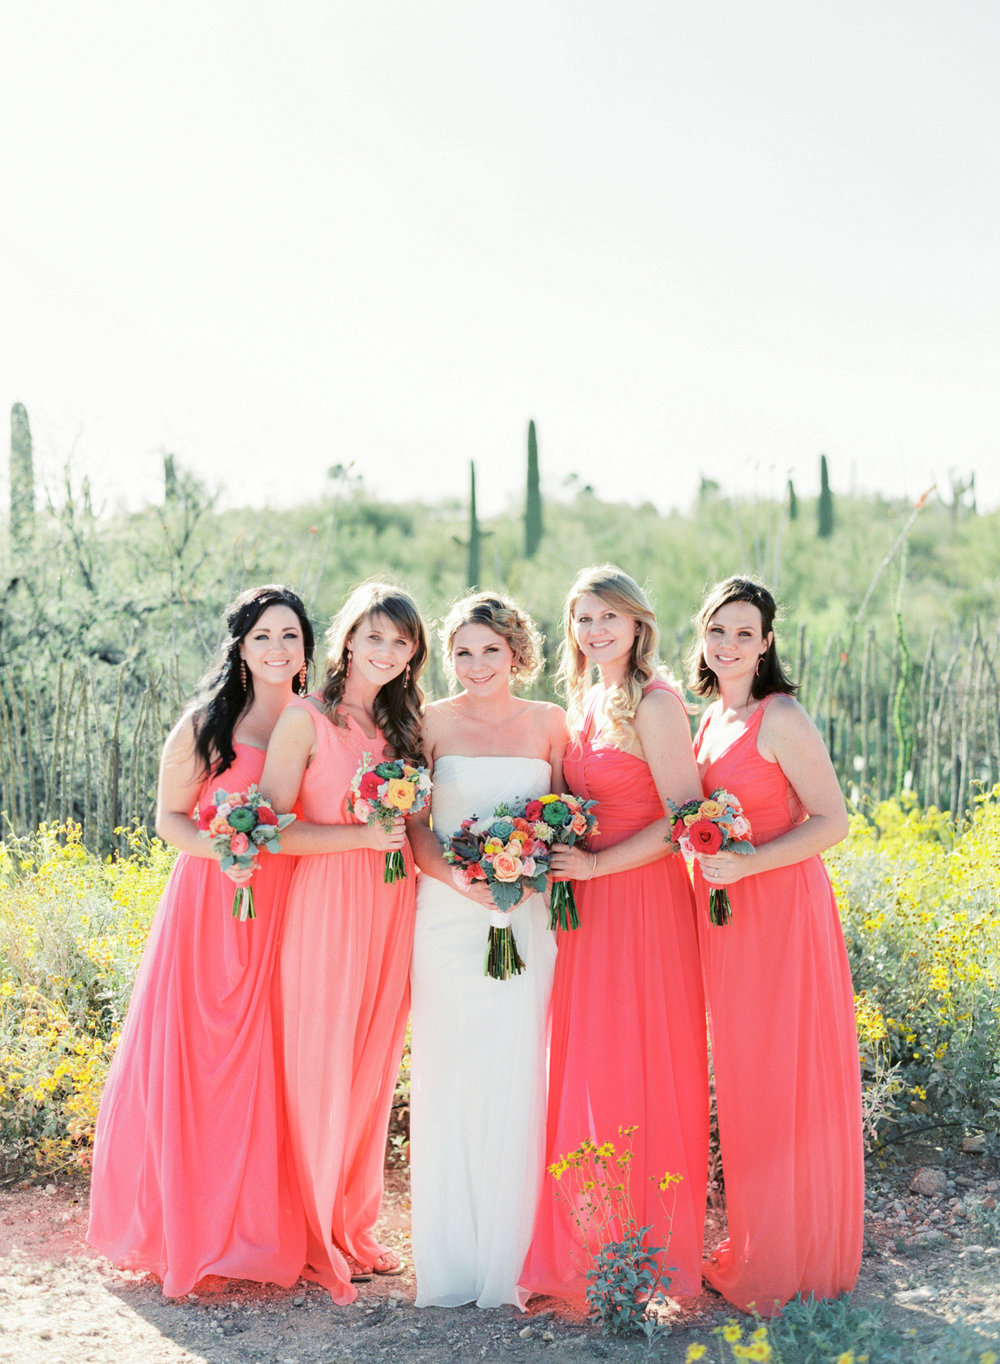 Bride with Bridesmaids in bright pink and salmon dresses